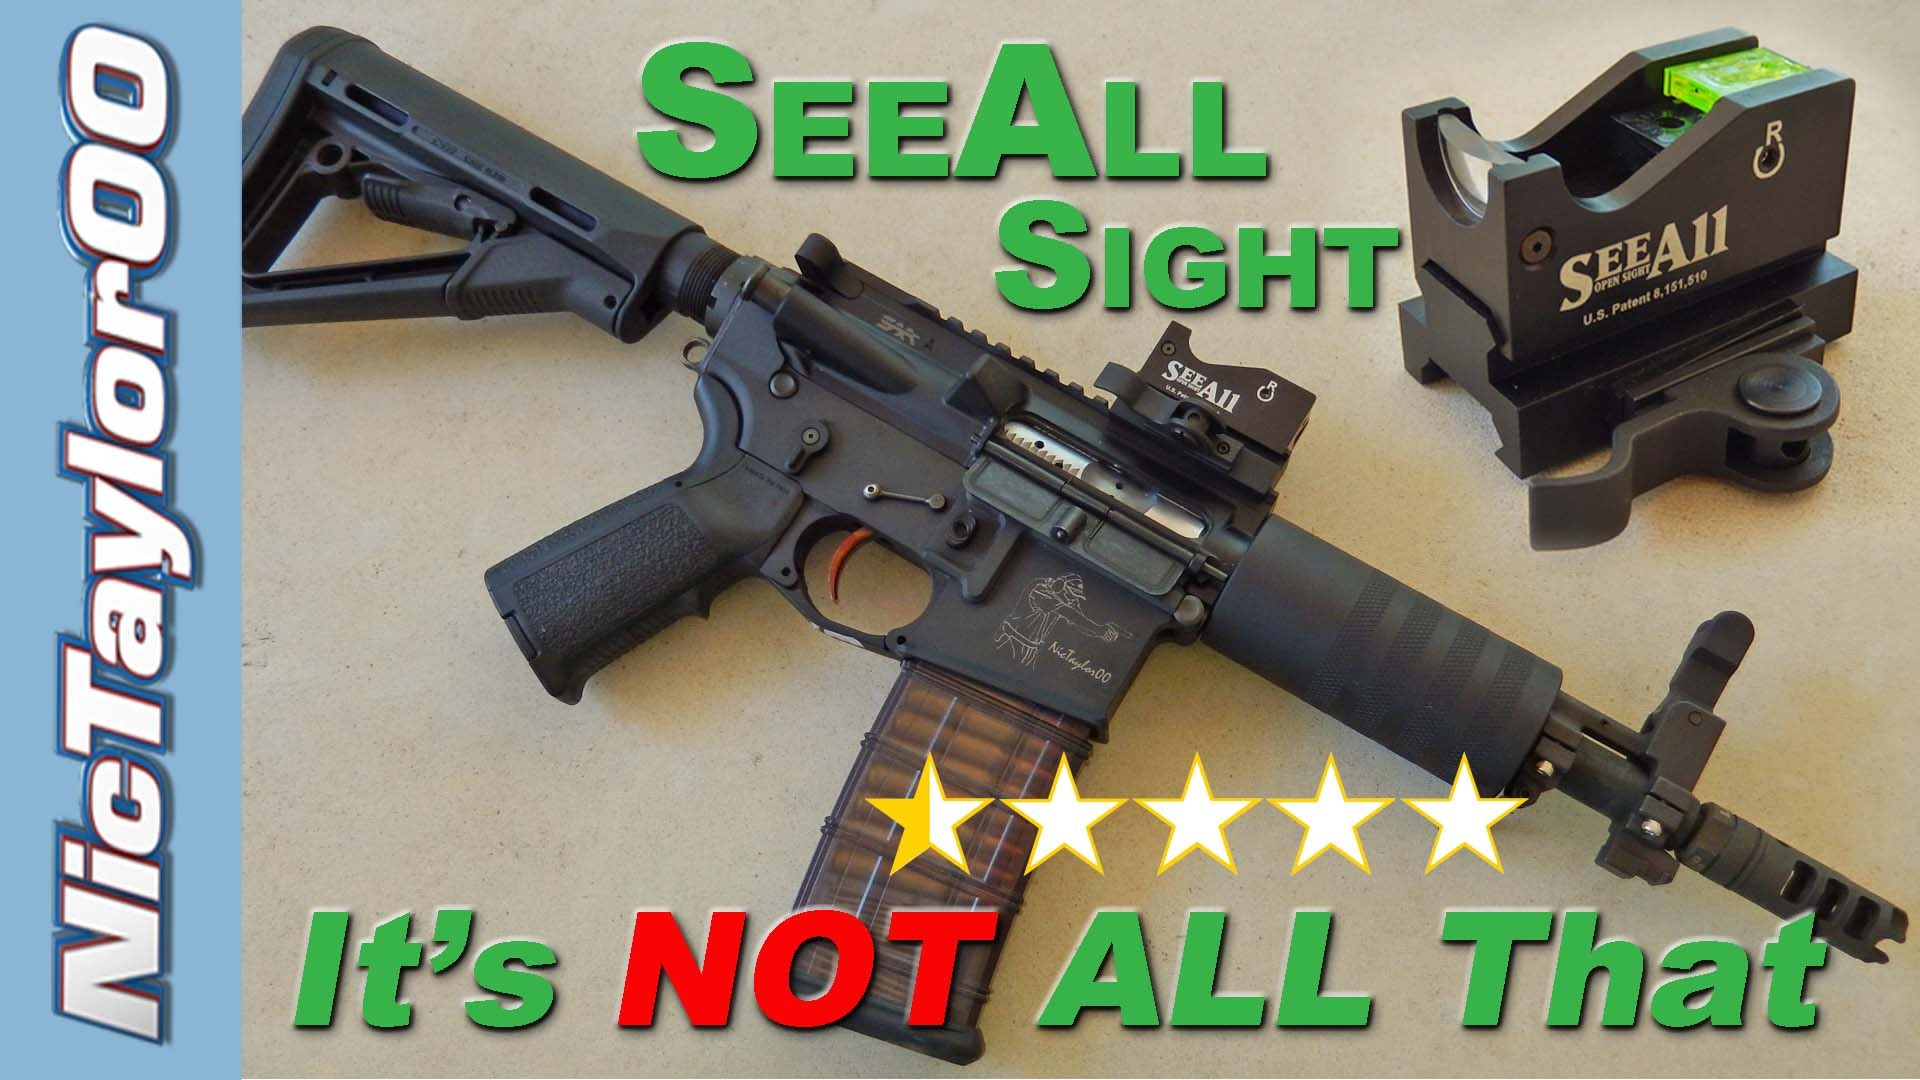 SeeAll Sight - Is it Better than a Red Dot ?